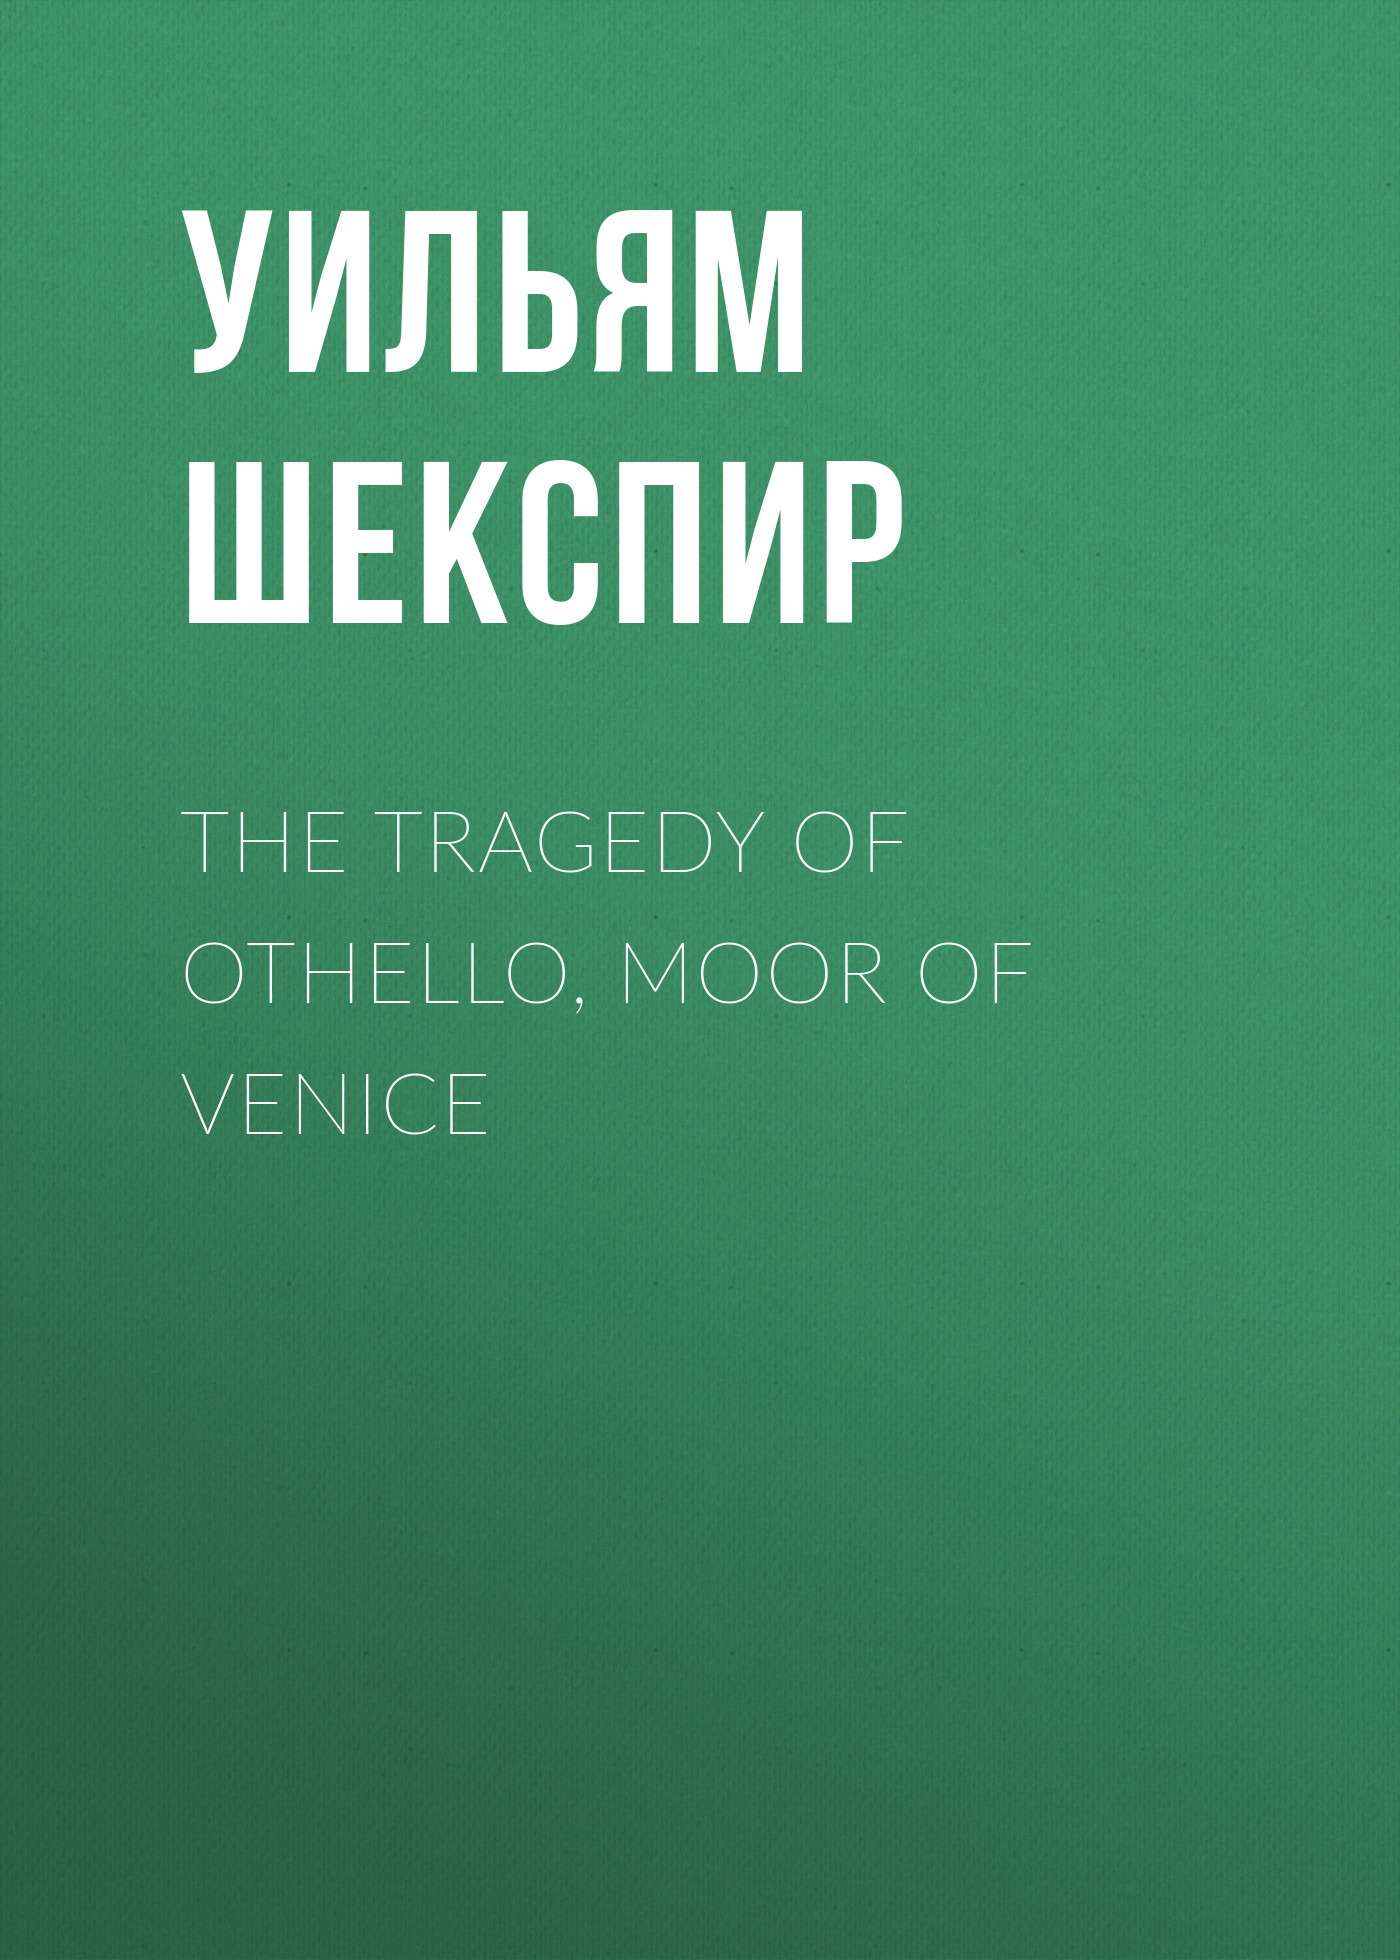 the tragedy of othello moor of venice